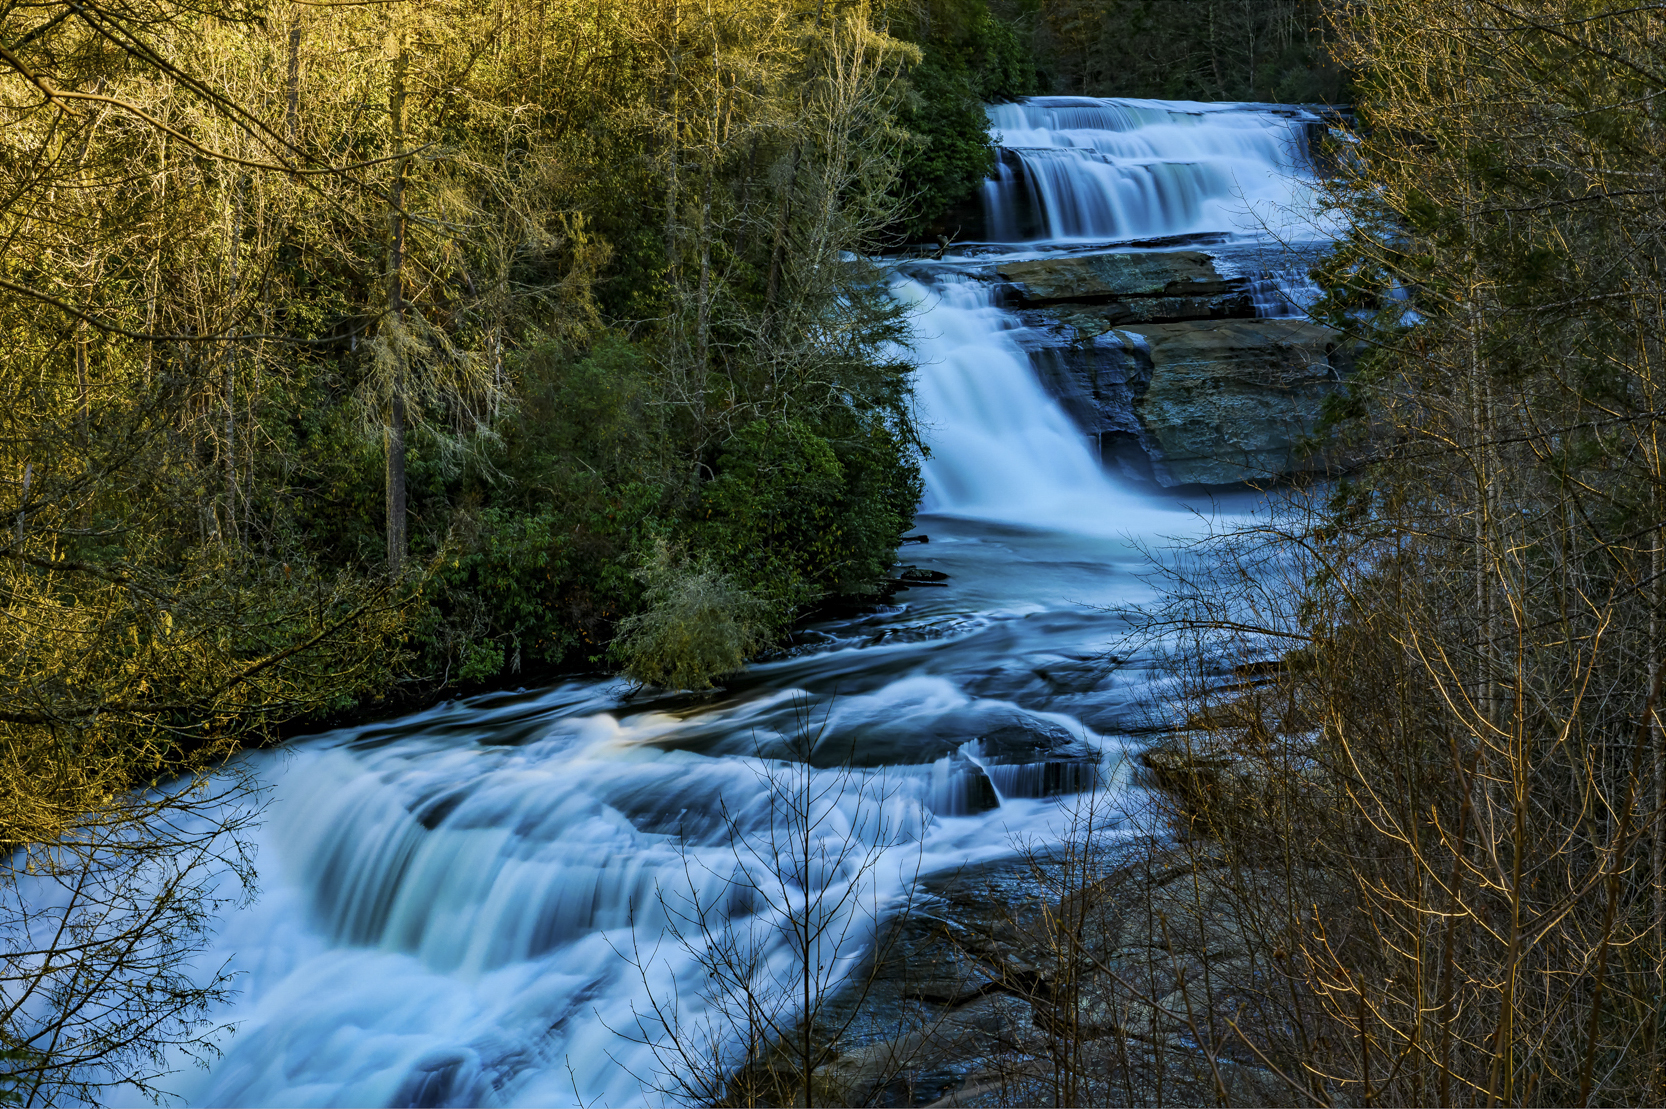 TOMO Pictures captured Landscape Photography in Asheville, NC